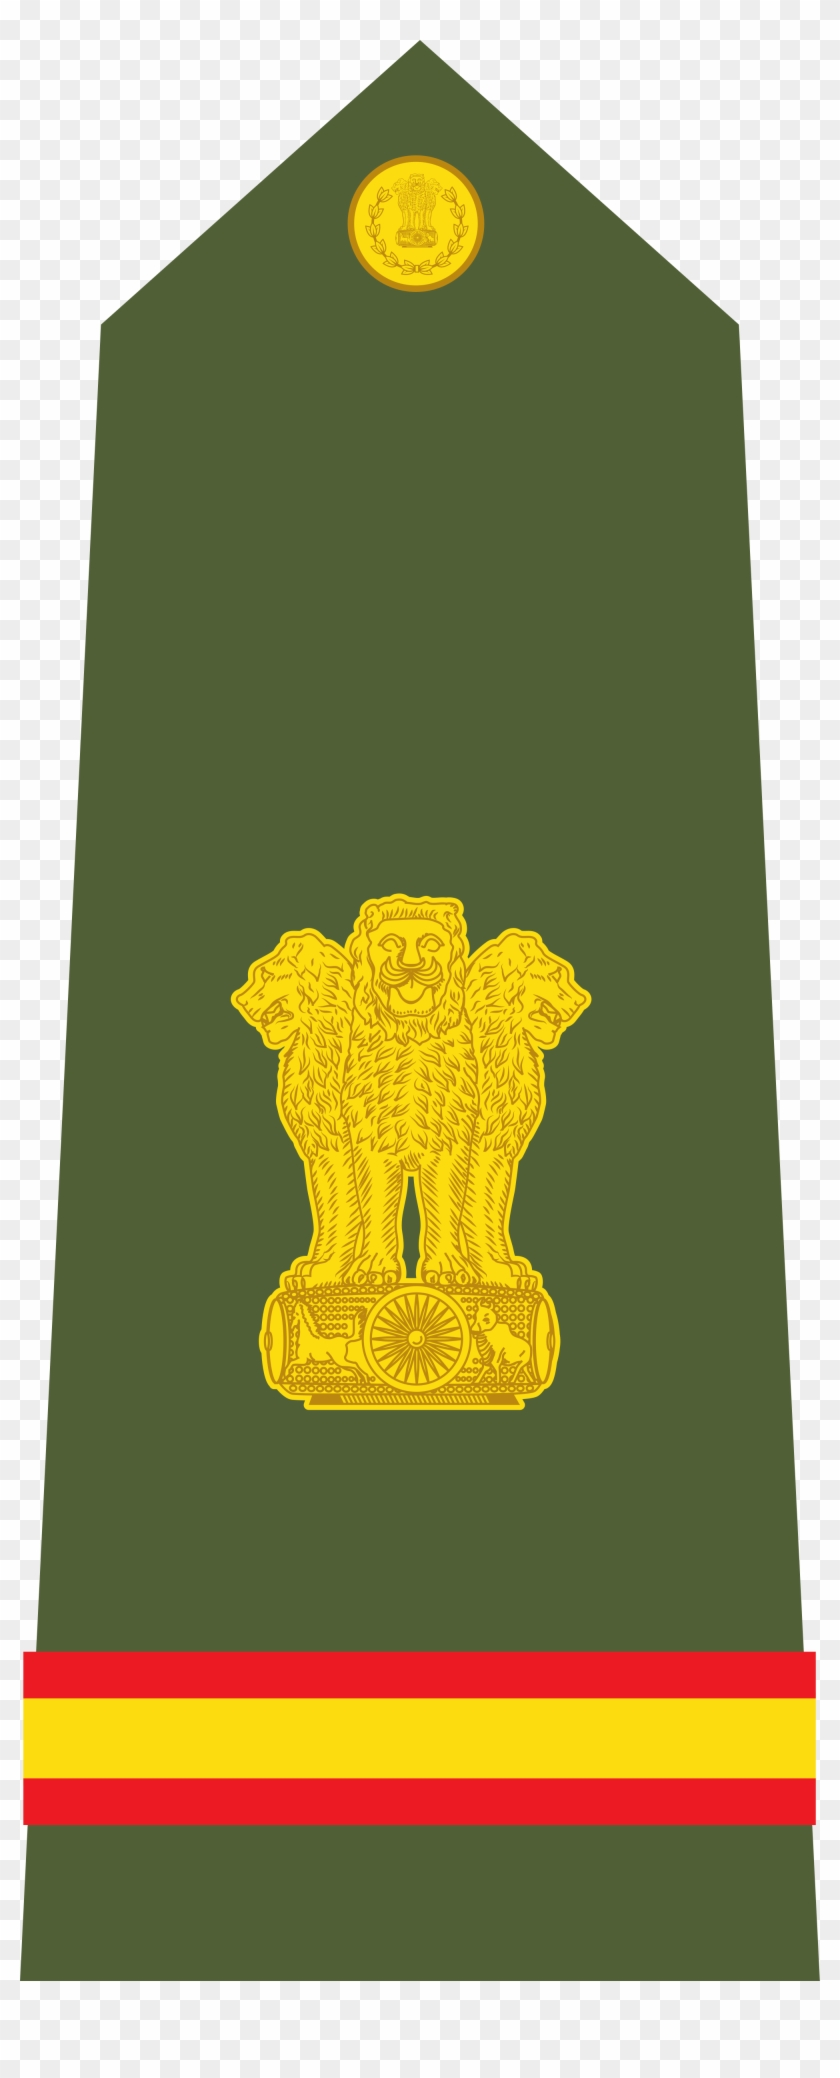 Indian Army Logo 7, Buy Clip Art - Subedar Rank In Indian